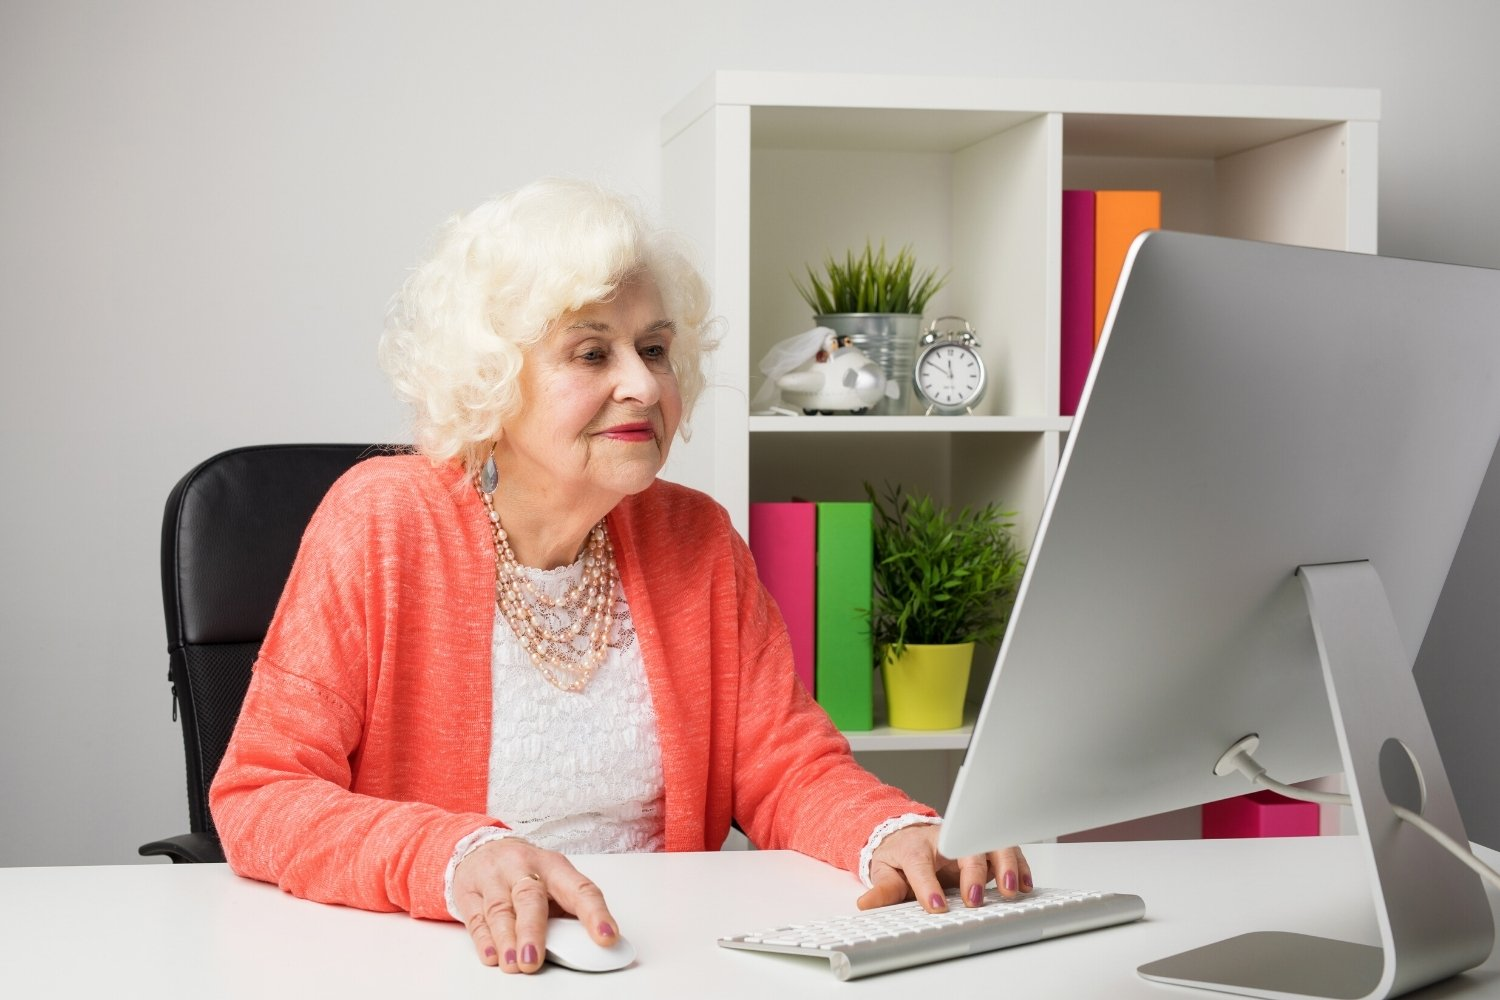 Common Mistakes Older Professionals Make When Applying for Remote Jobs